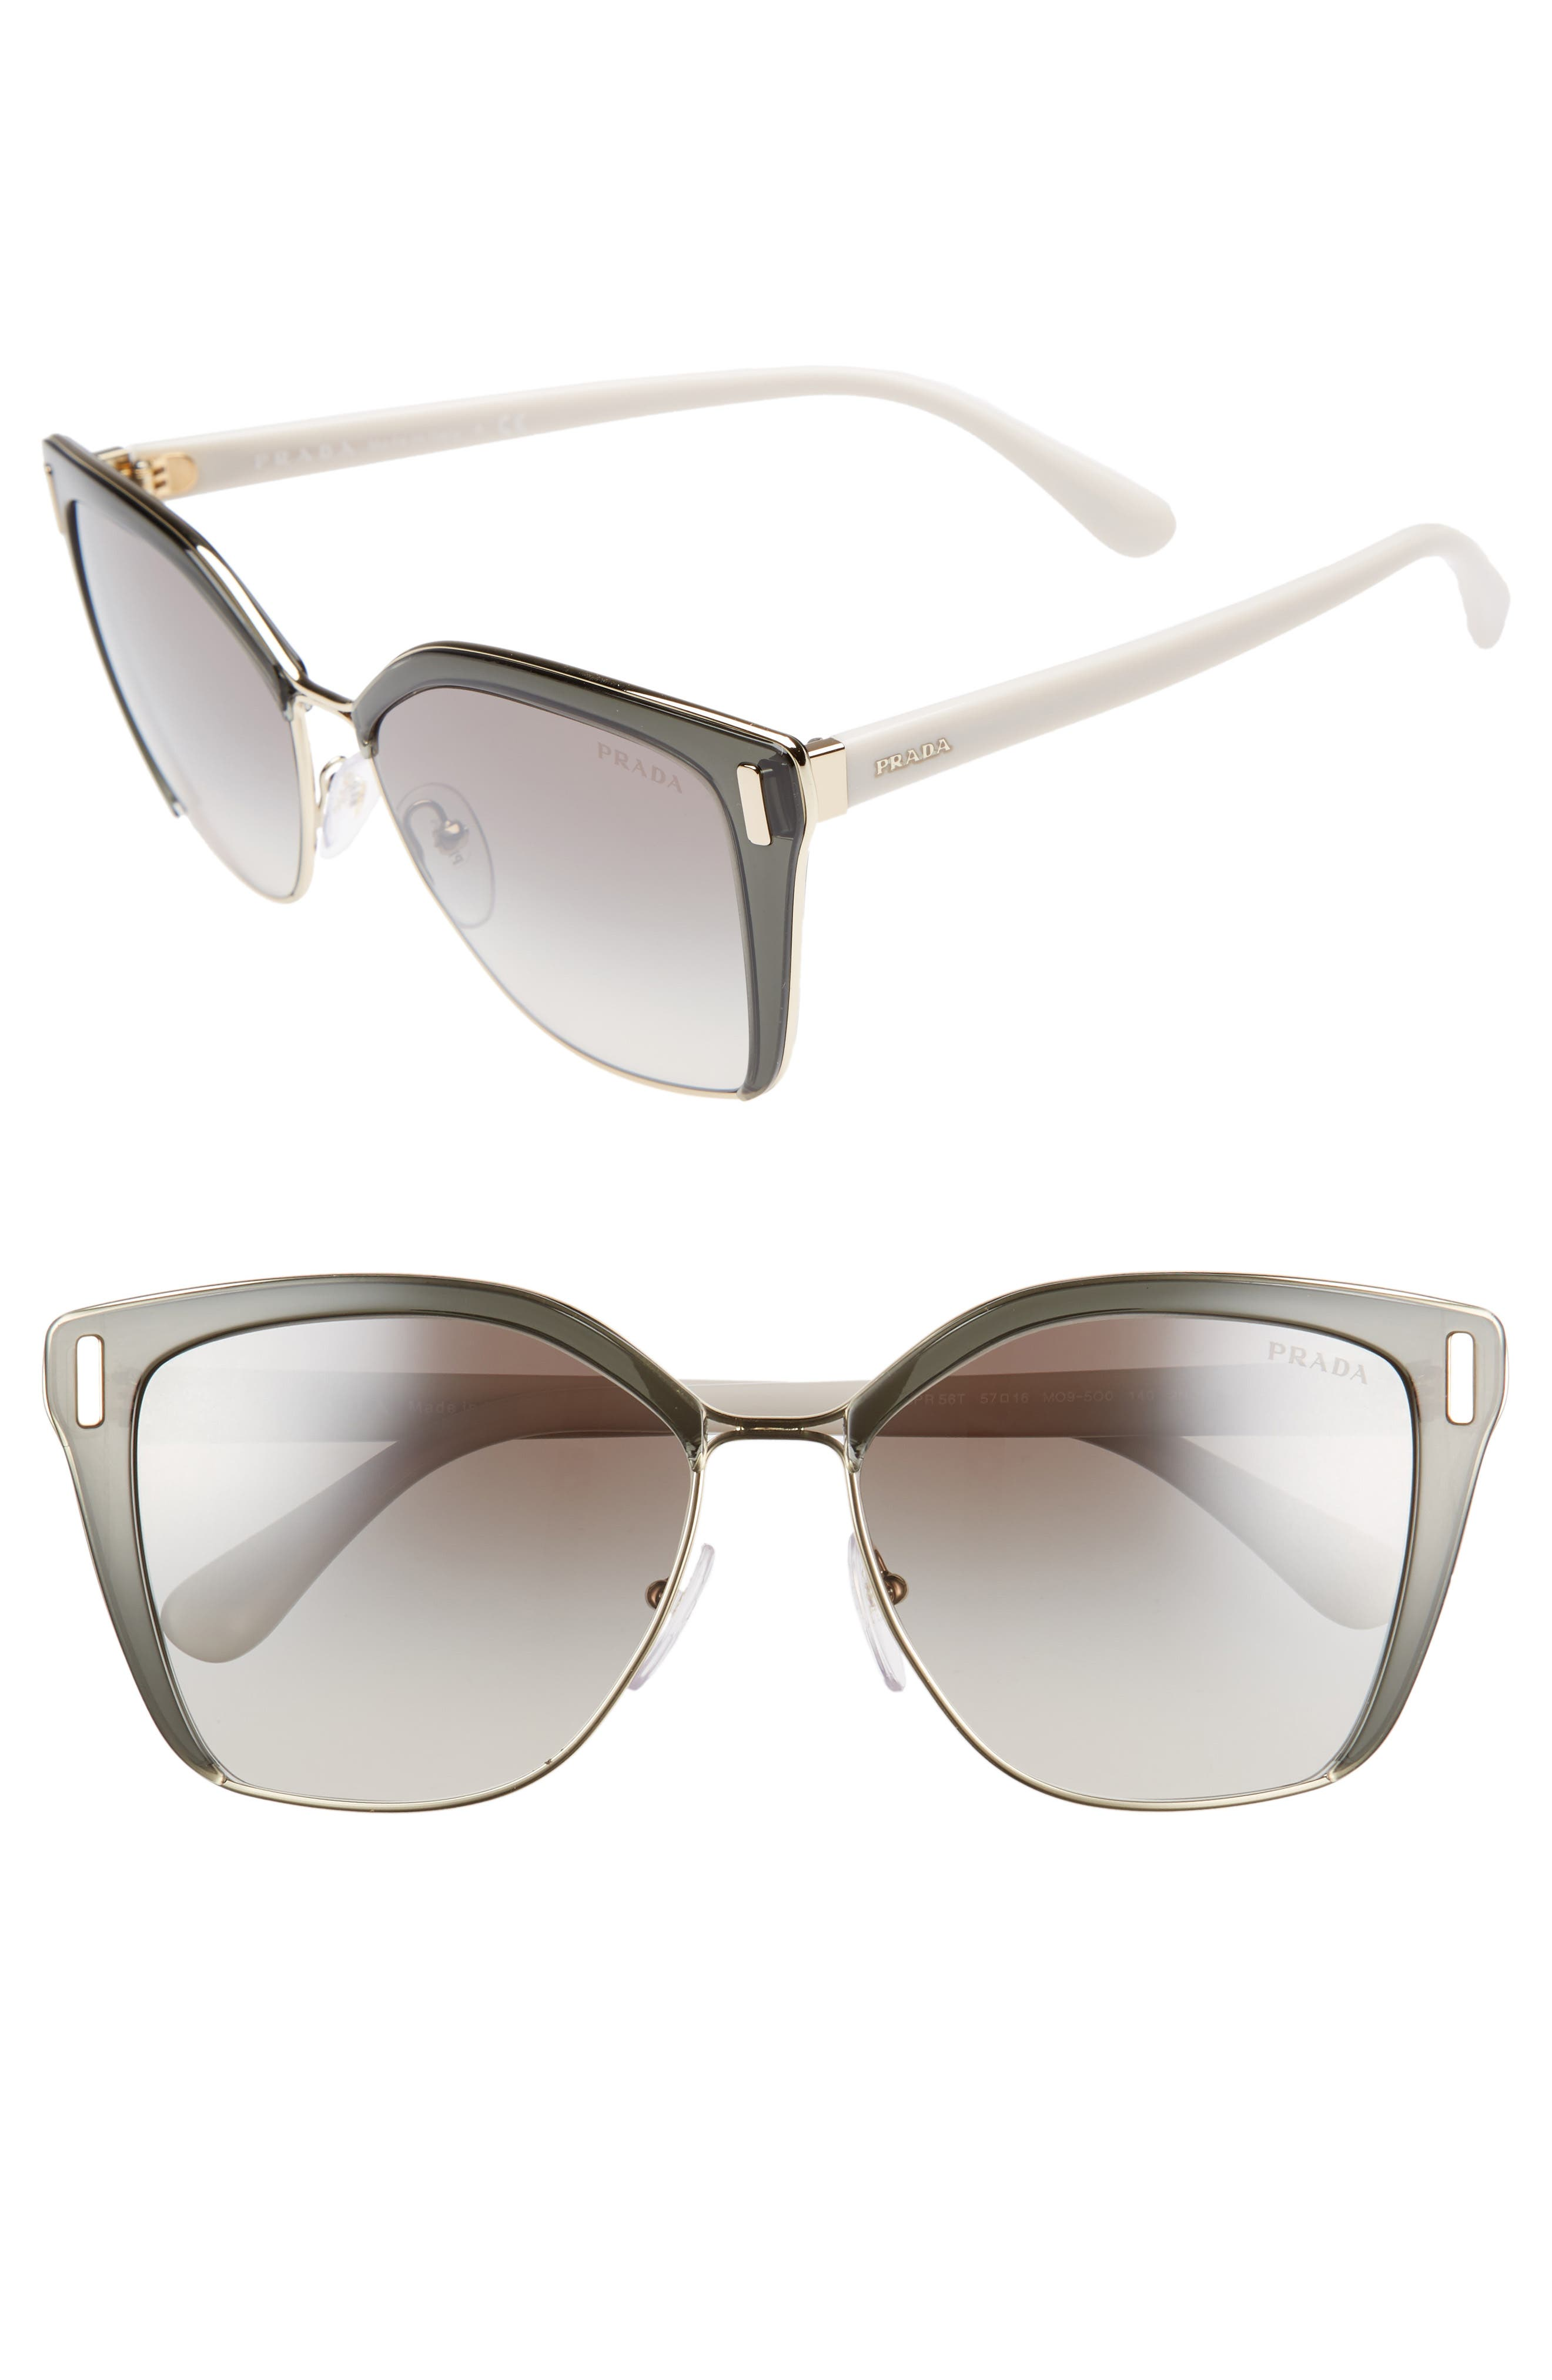 54mm Gradient Geometric Sunglasses,                             Main thumbnail 1, color,                             Grey/ Gold Gradient Mirror